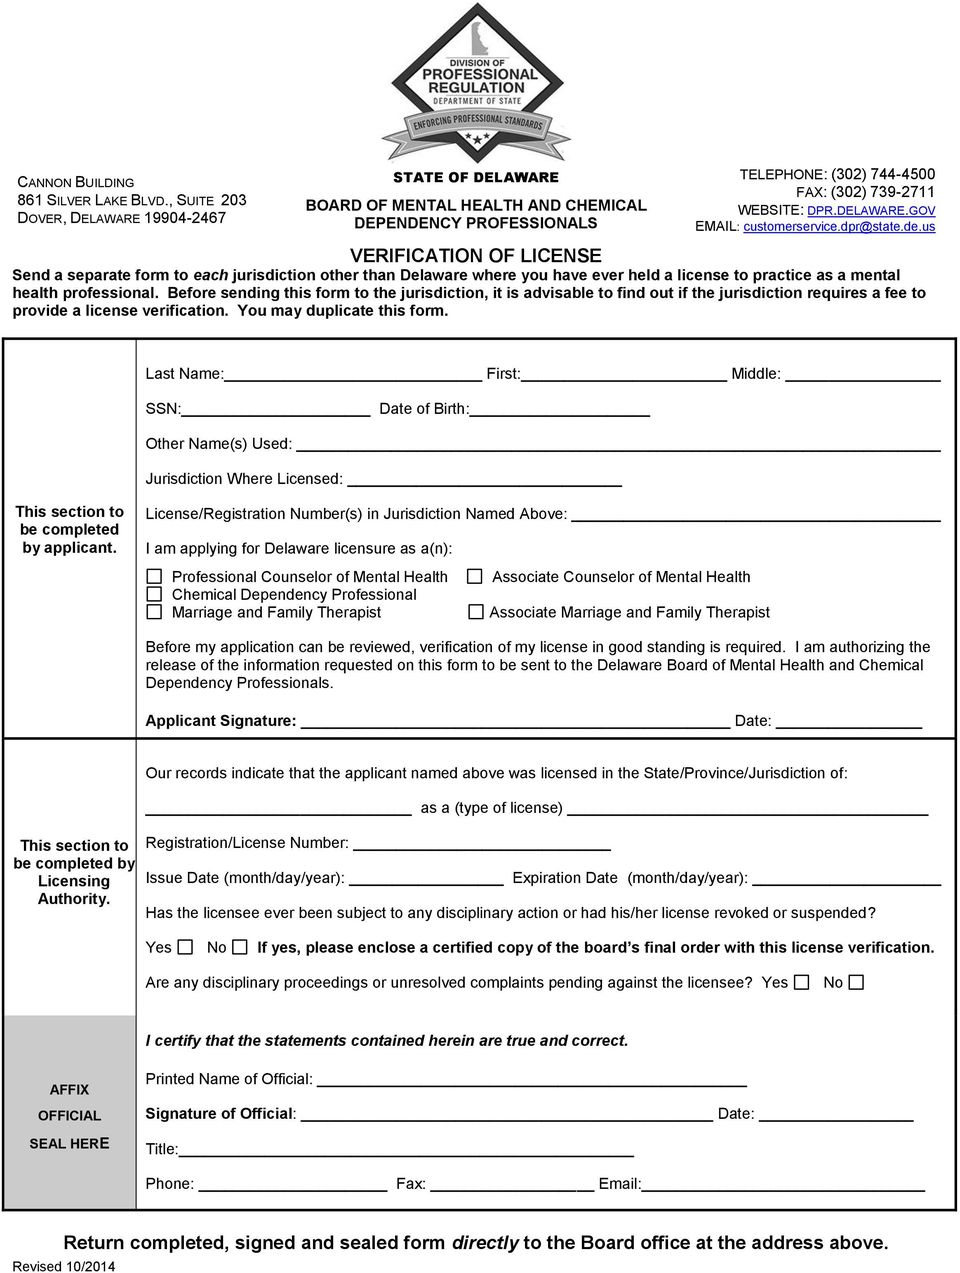 dpr@state.de.us VERIFICATION OF LICENSE Send a separate form to each jurisdiction other than Delaware where you have ever held a license to practice as a mental health professional.